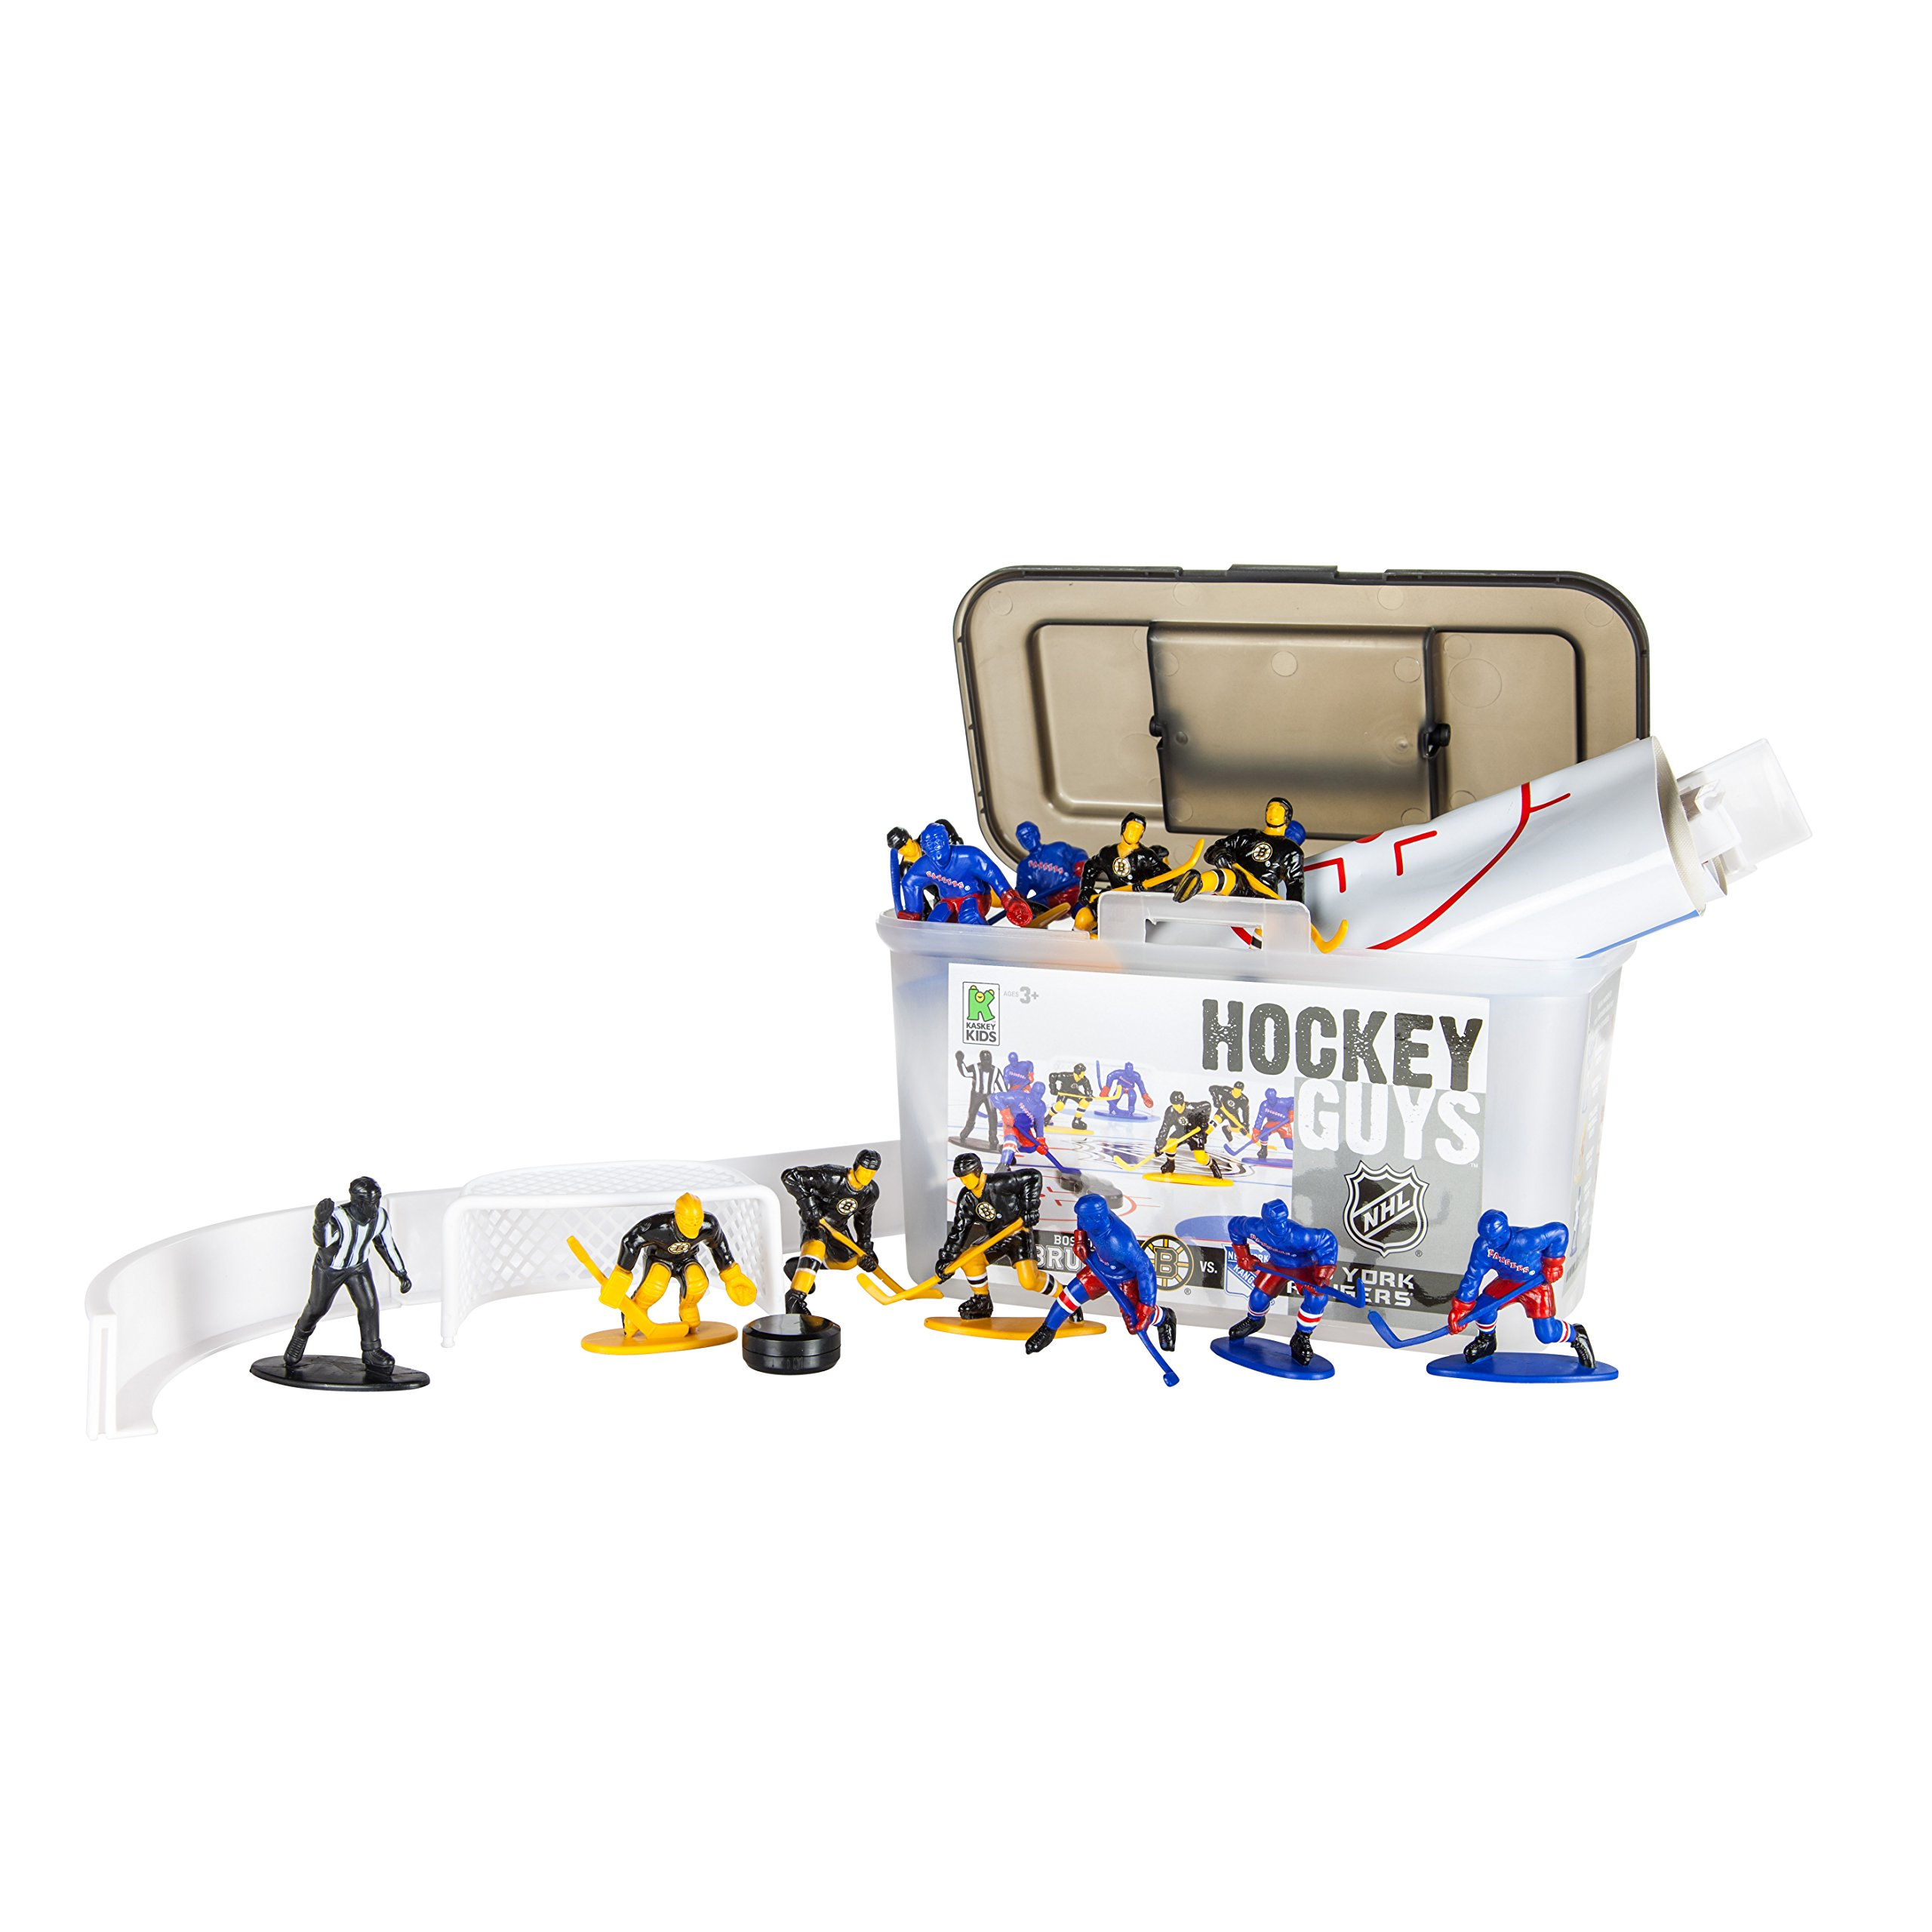 Amazon.com  Kaskey Kids Hockey Guys  Rangers vs. Bruins Inspires  Imagination with Open-Ended Play Includes 2 Full Teams and More For Ages 3  and Up  Toys   ... 60aa9a36b